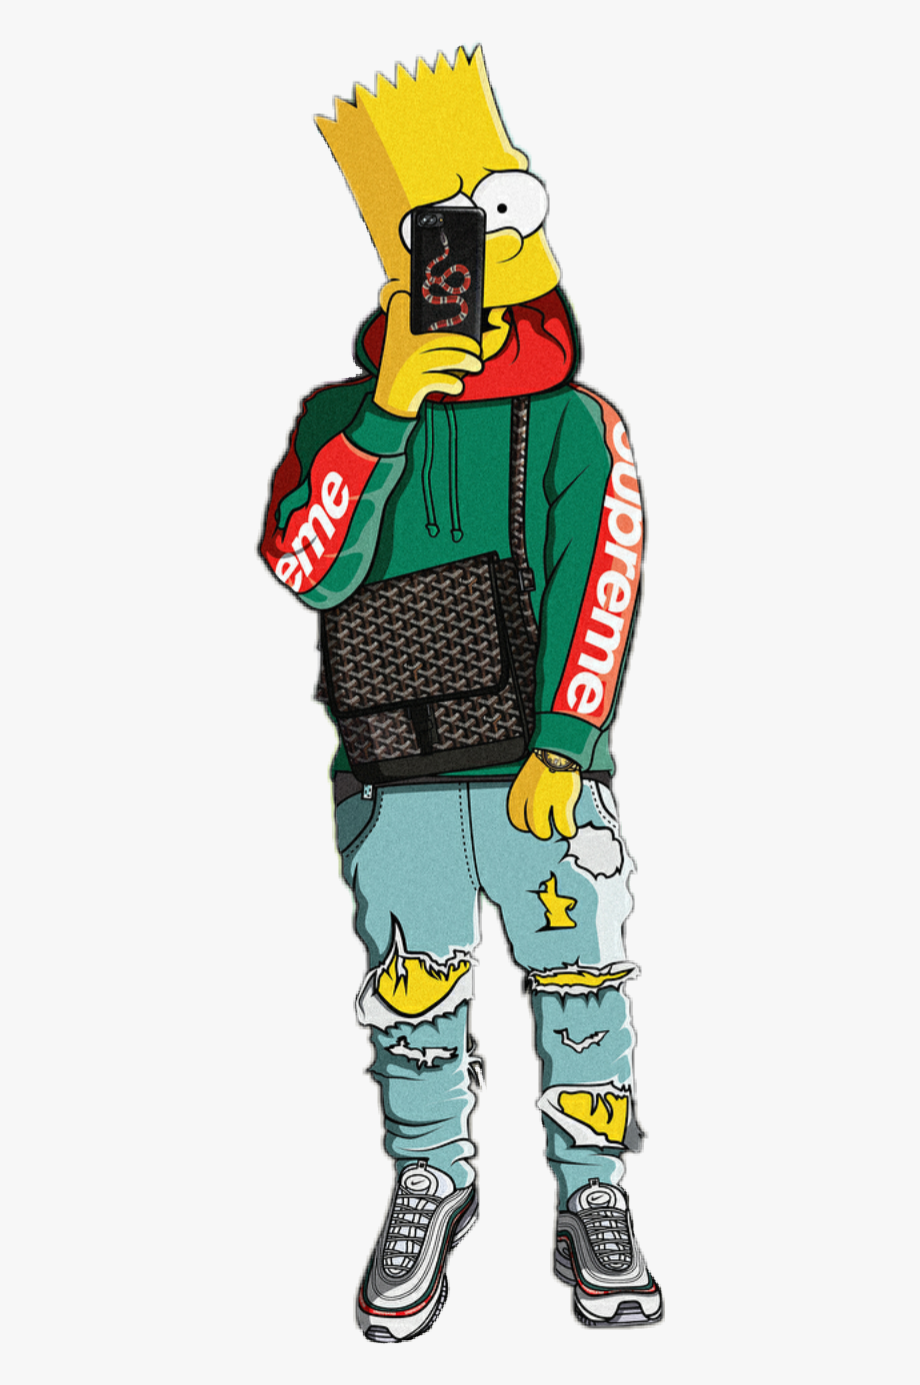 Download And Share Bart Simpson Bape Money Trap Rich Yeezy Bape Bart Simpson Supreme Cartoon Seach More Similar Free T Bart Simpson Art Bart Simpson Bart